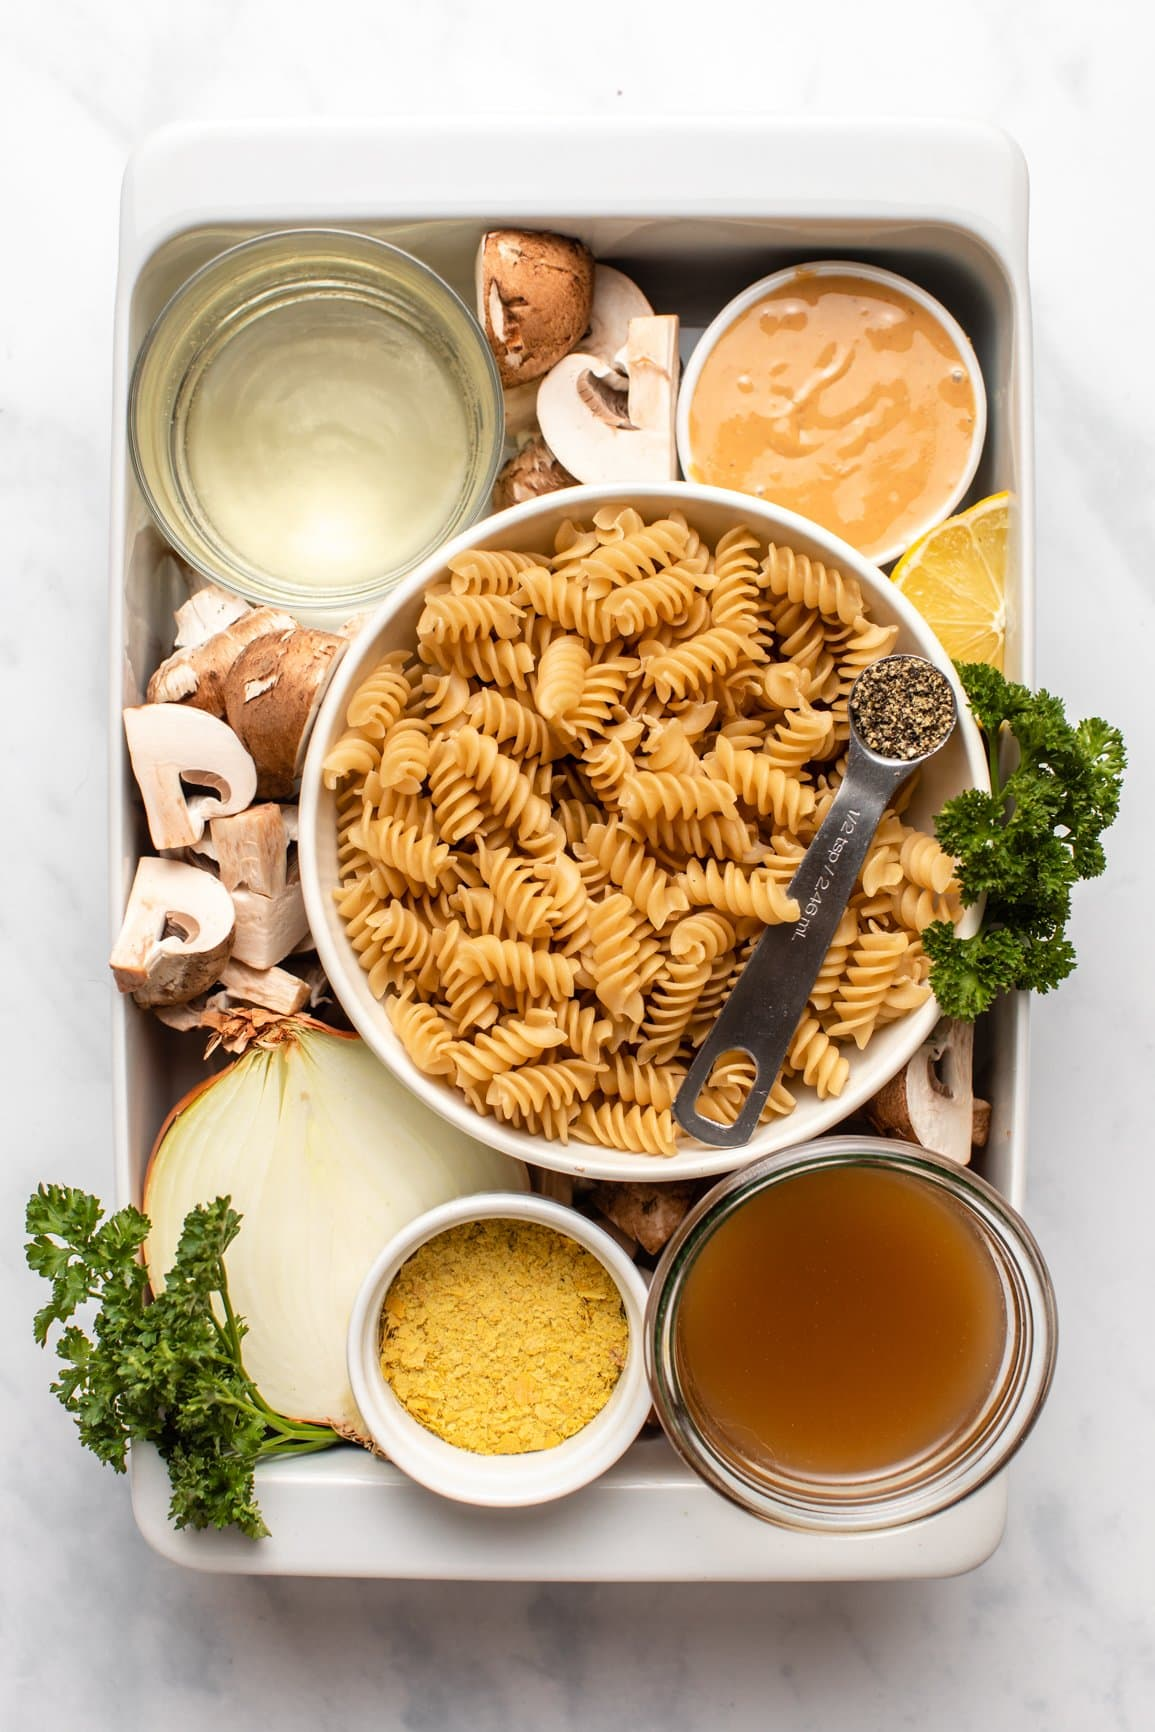 ingredients for vegan mushroom stroganoff in small containers organized inside of casserole dish